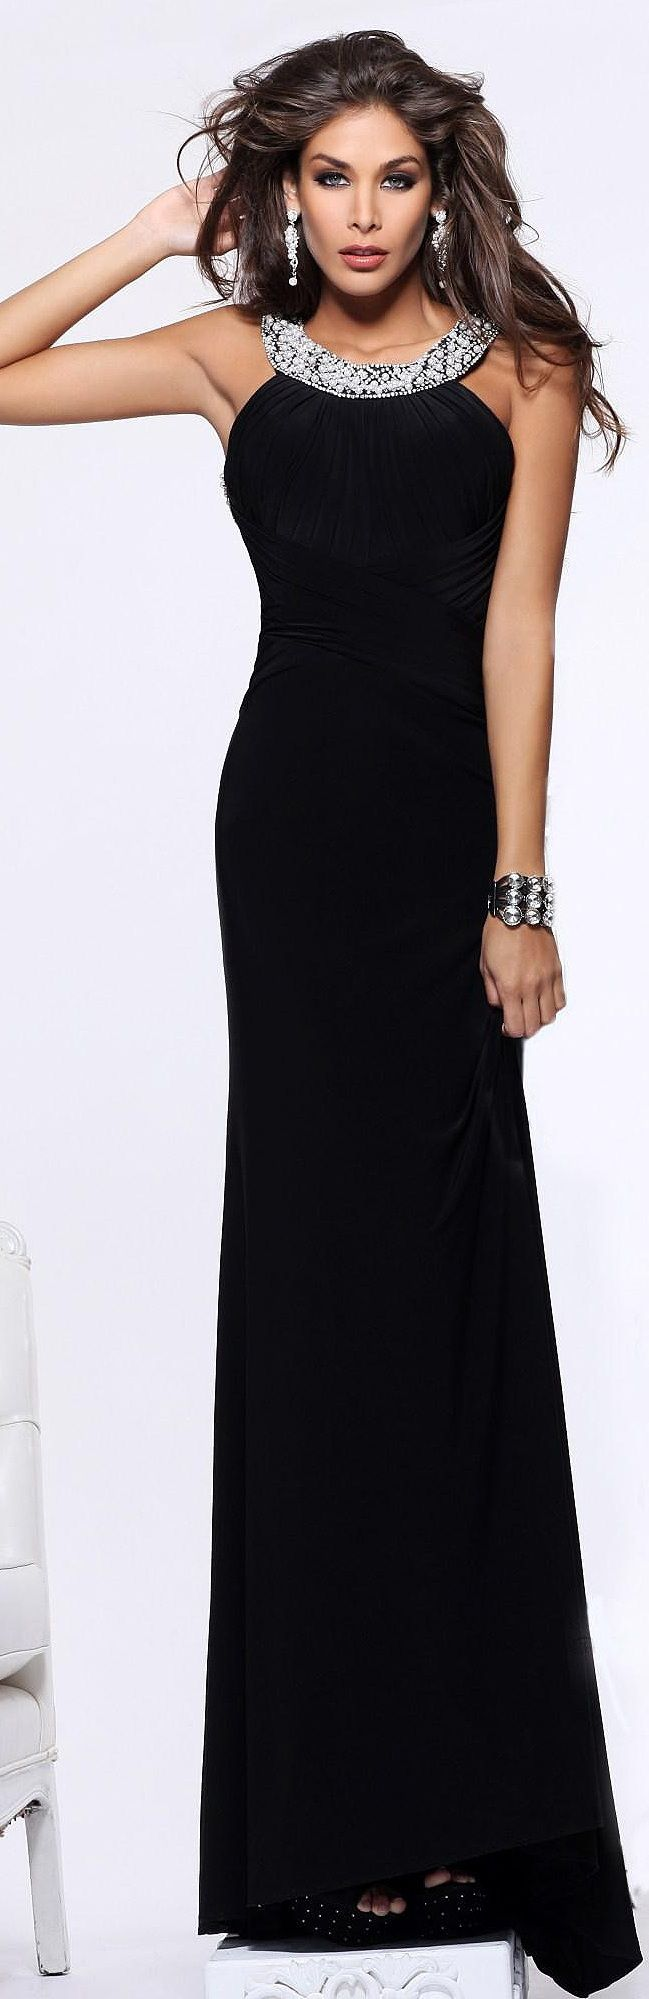 Wedding Black Evening Dresses 17 best ideas about black evening dresses on pinterest elegant looking for prom sale find deals last years styles at henris cloud nine with including sherri h